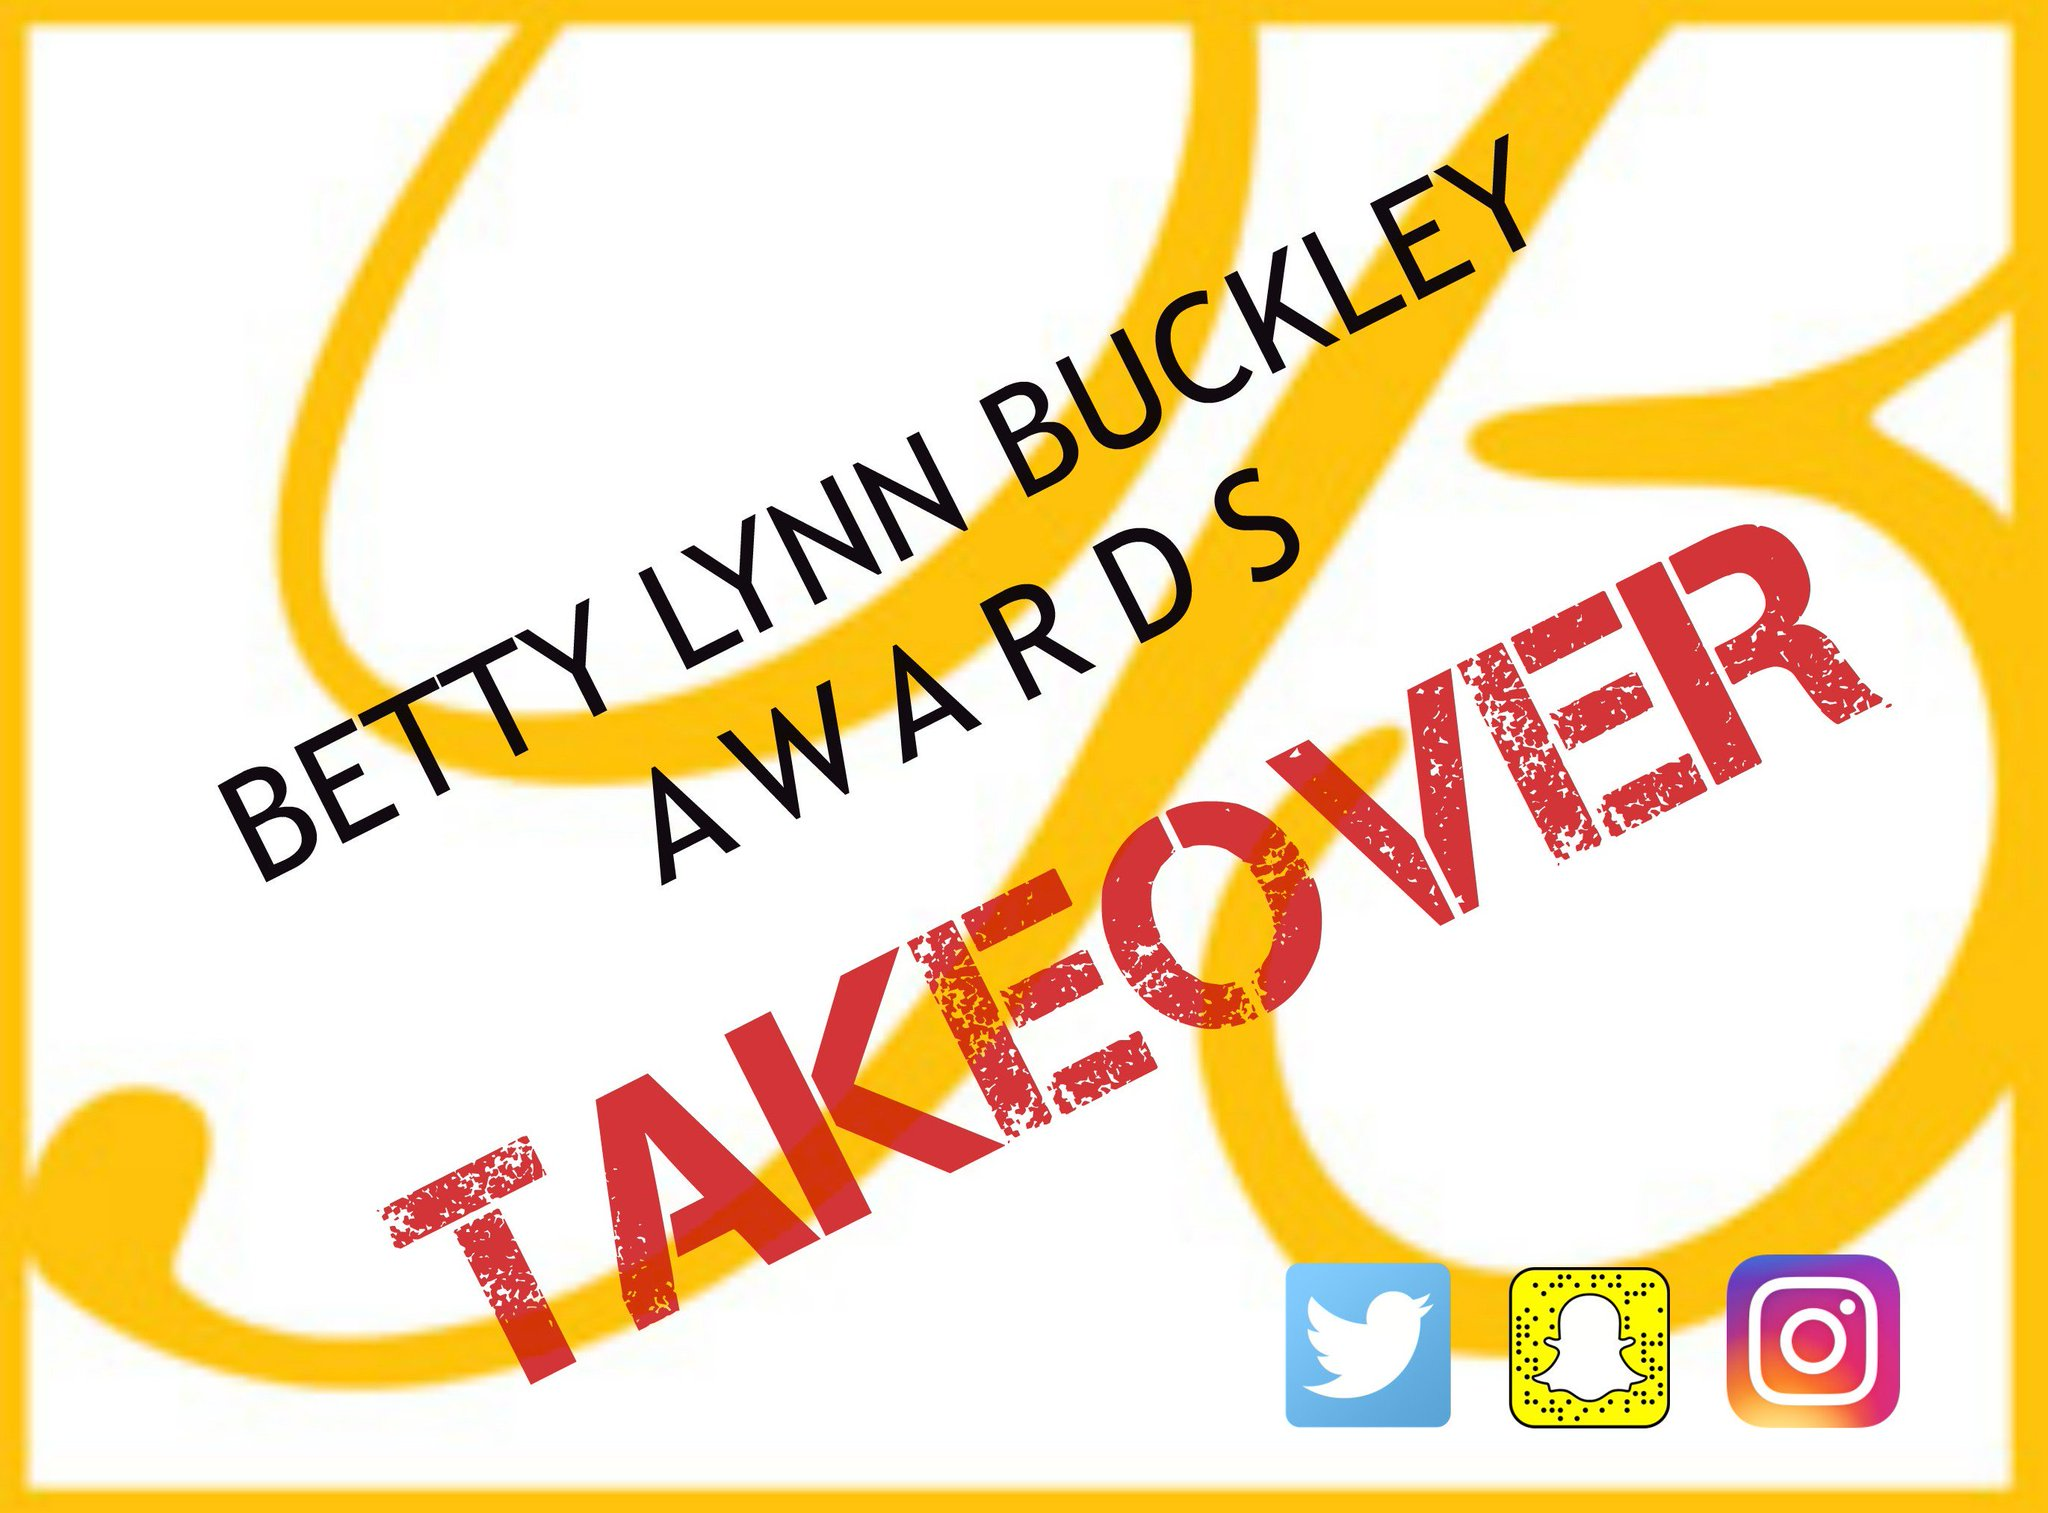 IT'S BUCKLEY TIME! Keep watch all day for sneak peeks into the process, rehearsal footage, interviews, winners, and more! @BettyBuckley https://t.co/6stkeamy6D